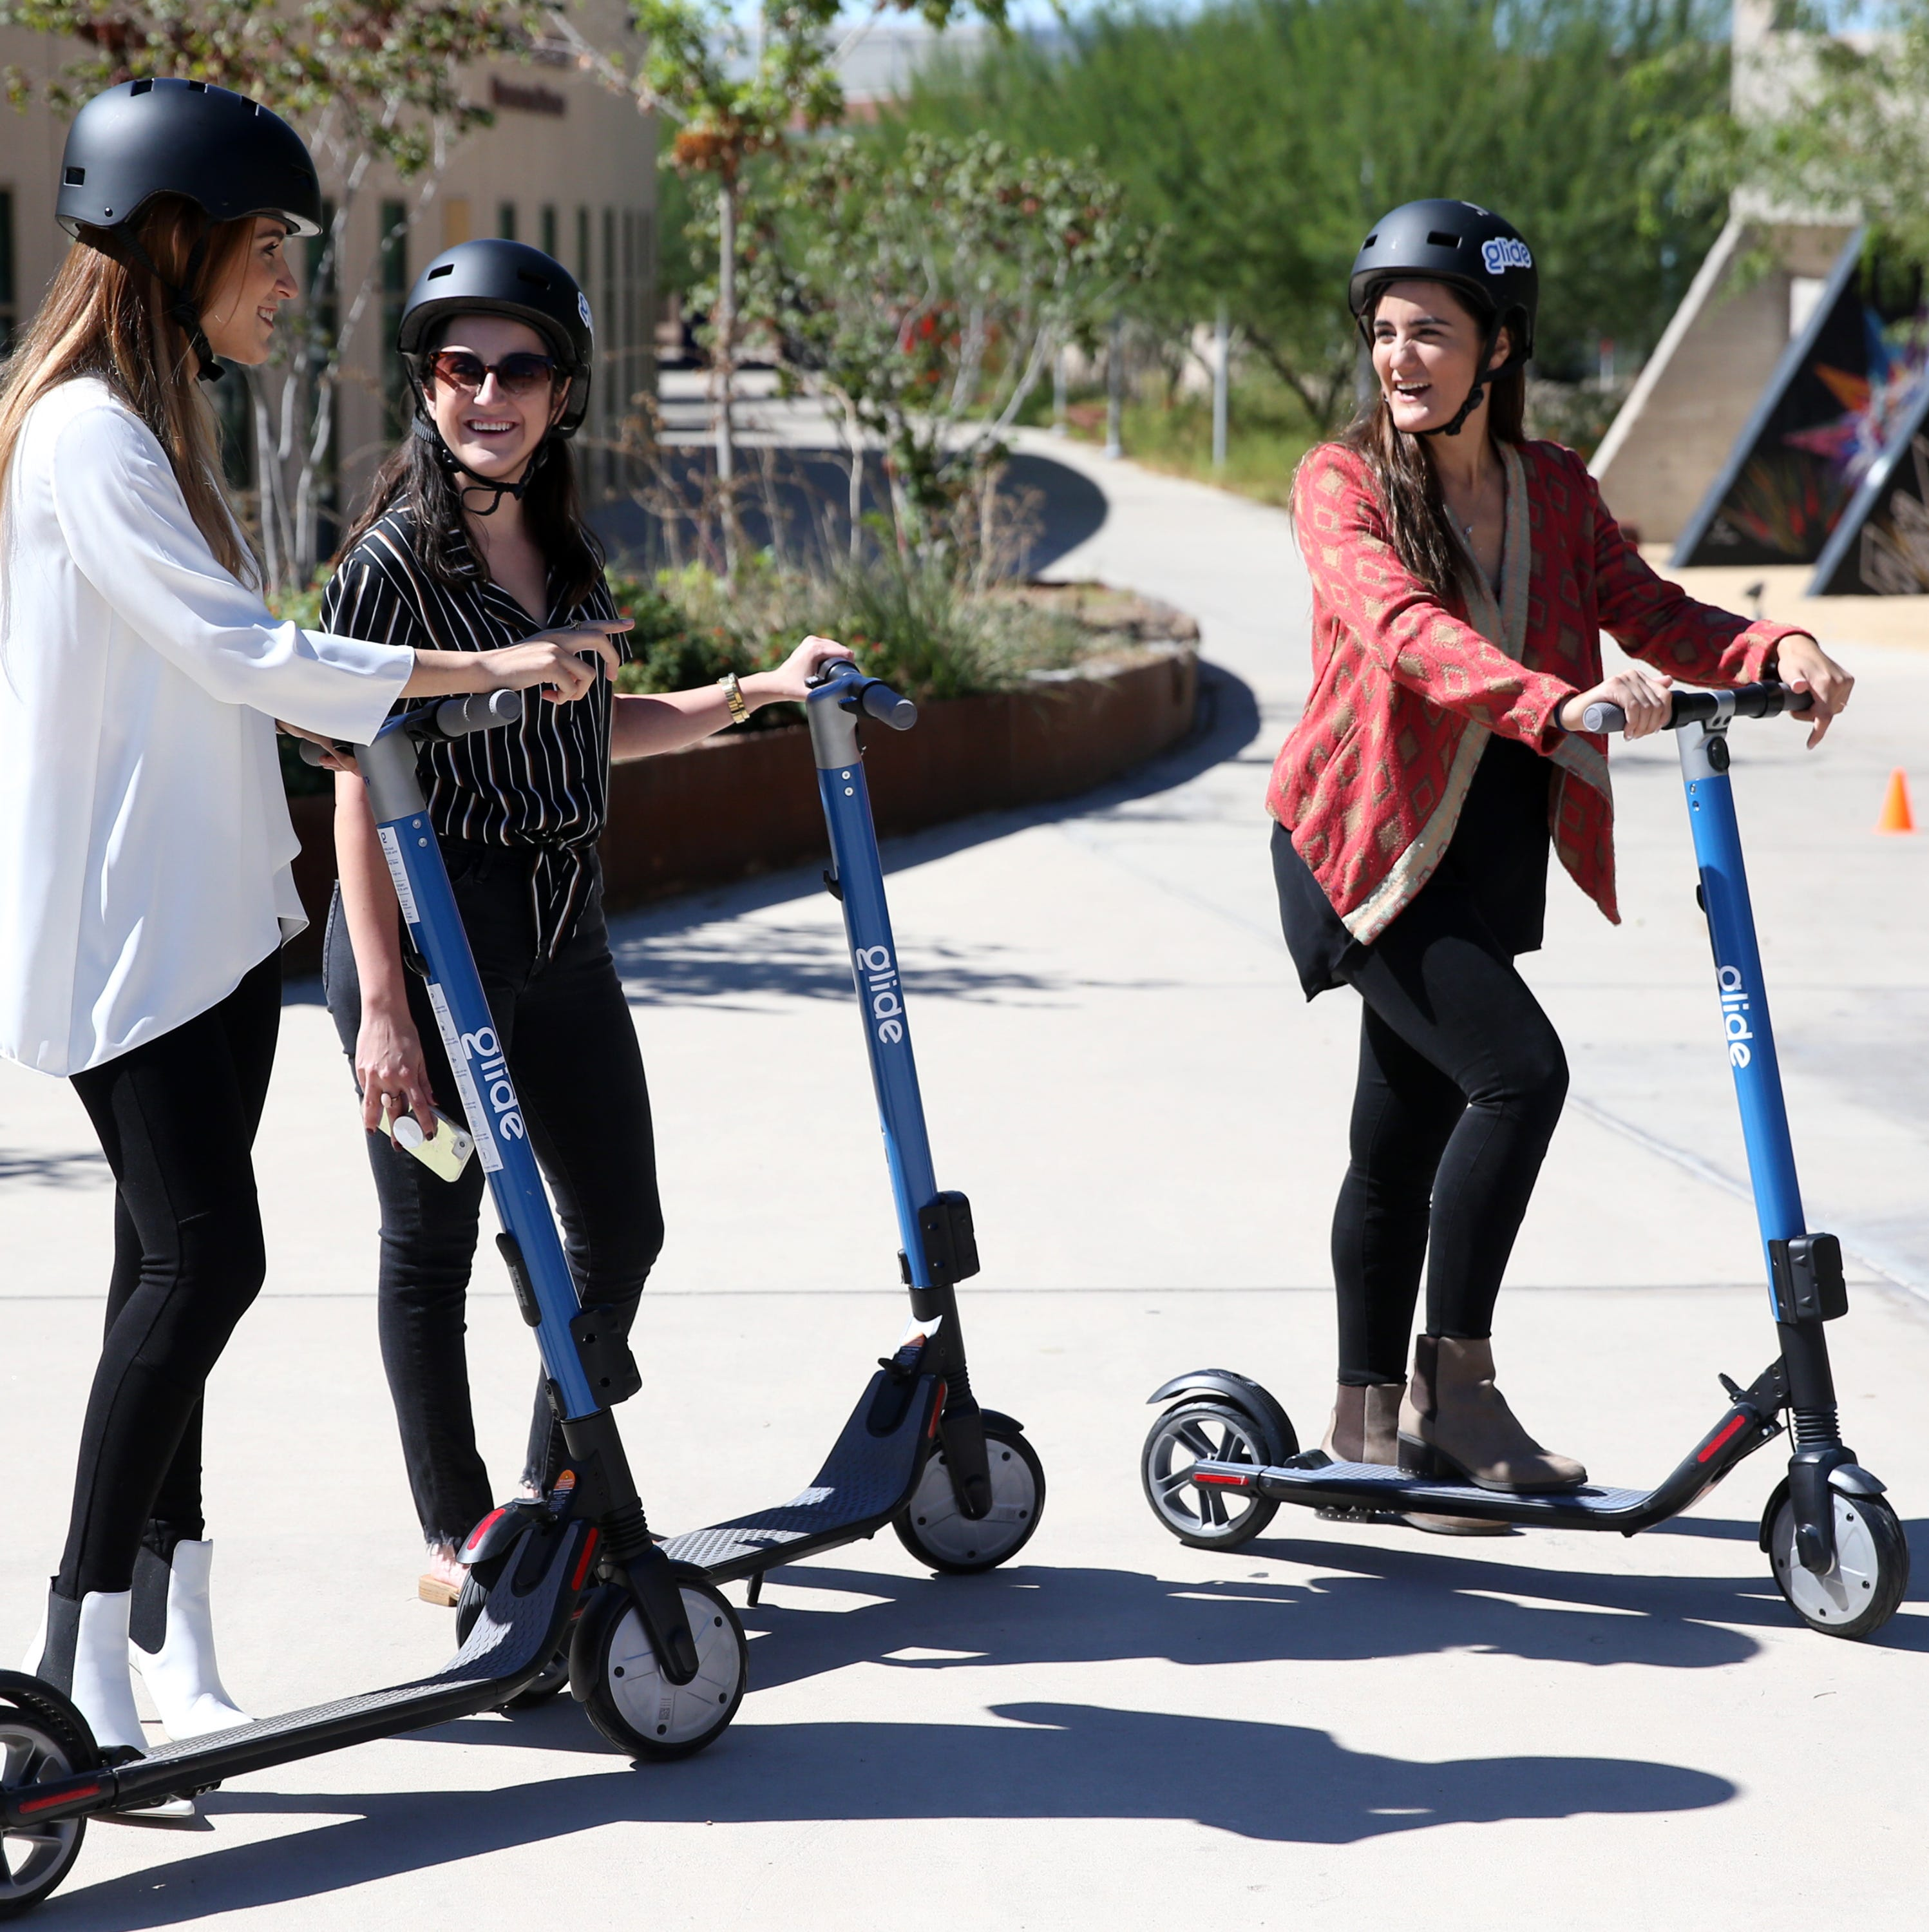 El Paso's first electric scooter rental service launching as scooter craze rolls across US